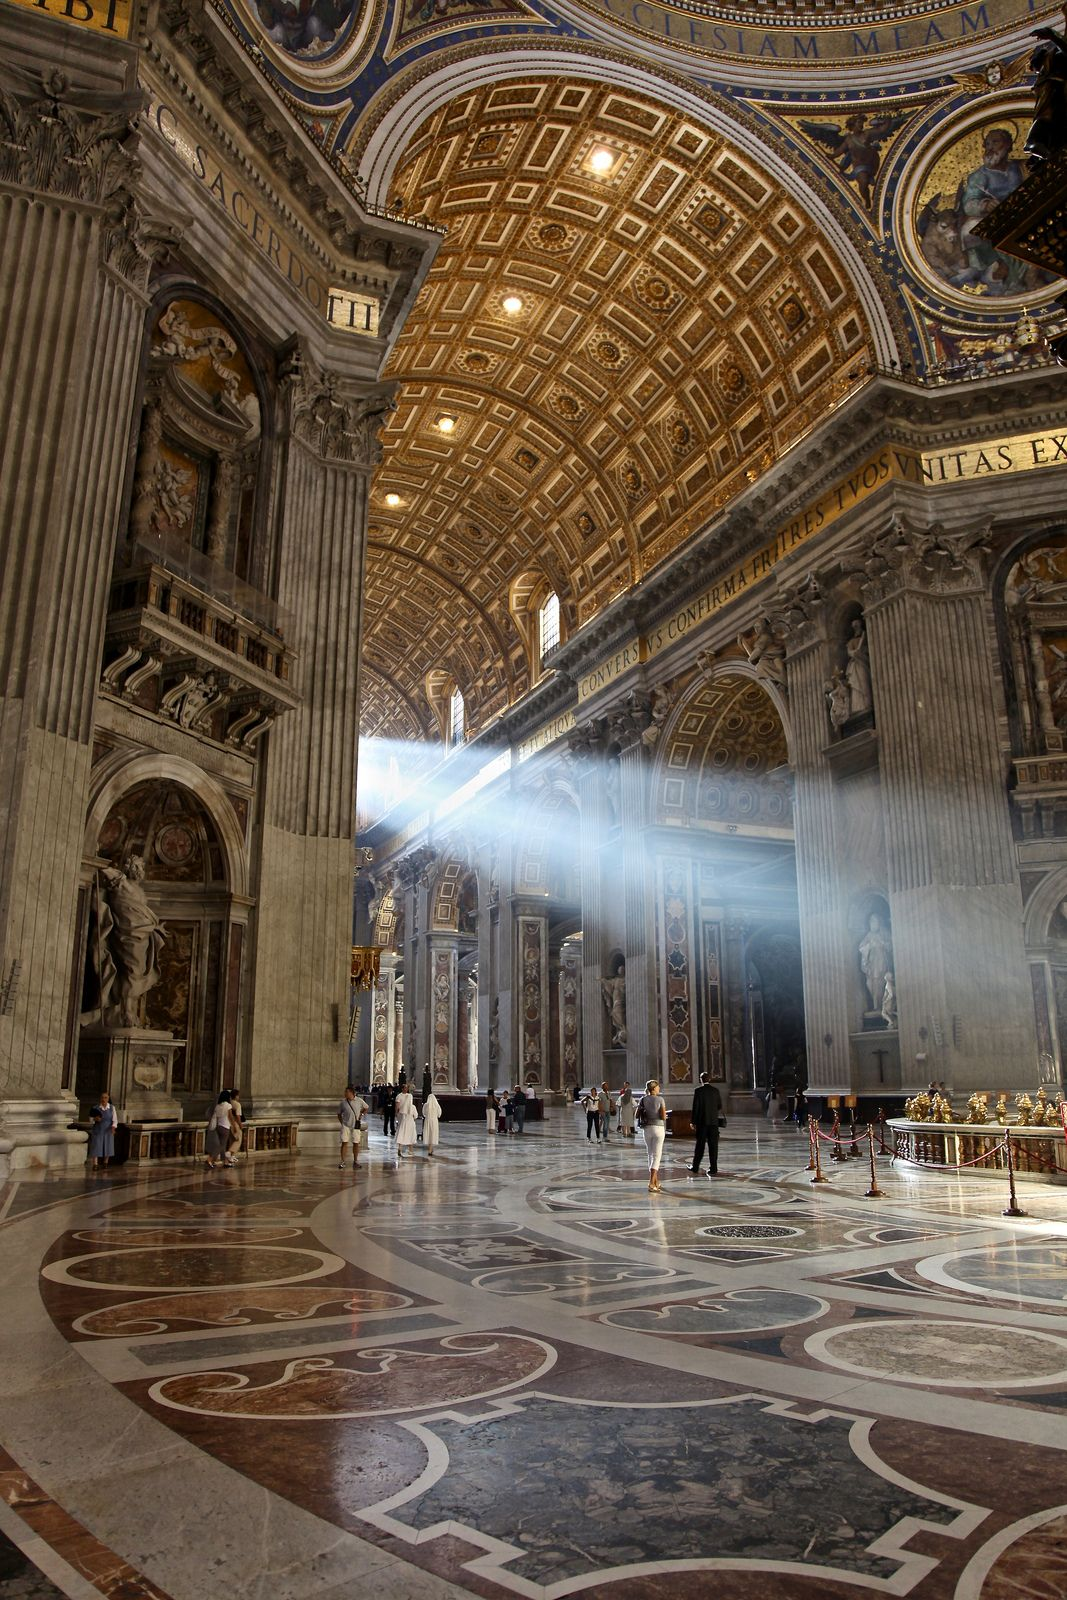 #Vatican, A must see while visiting Rome, Italy